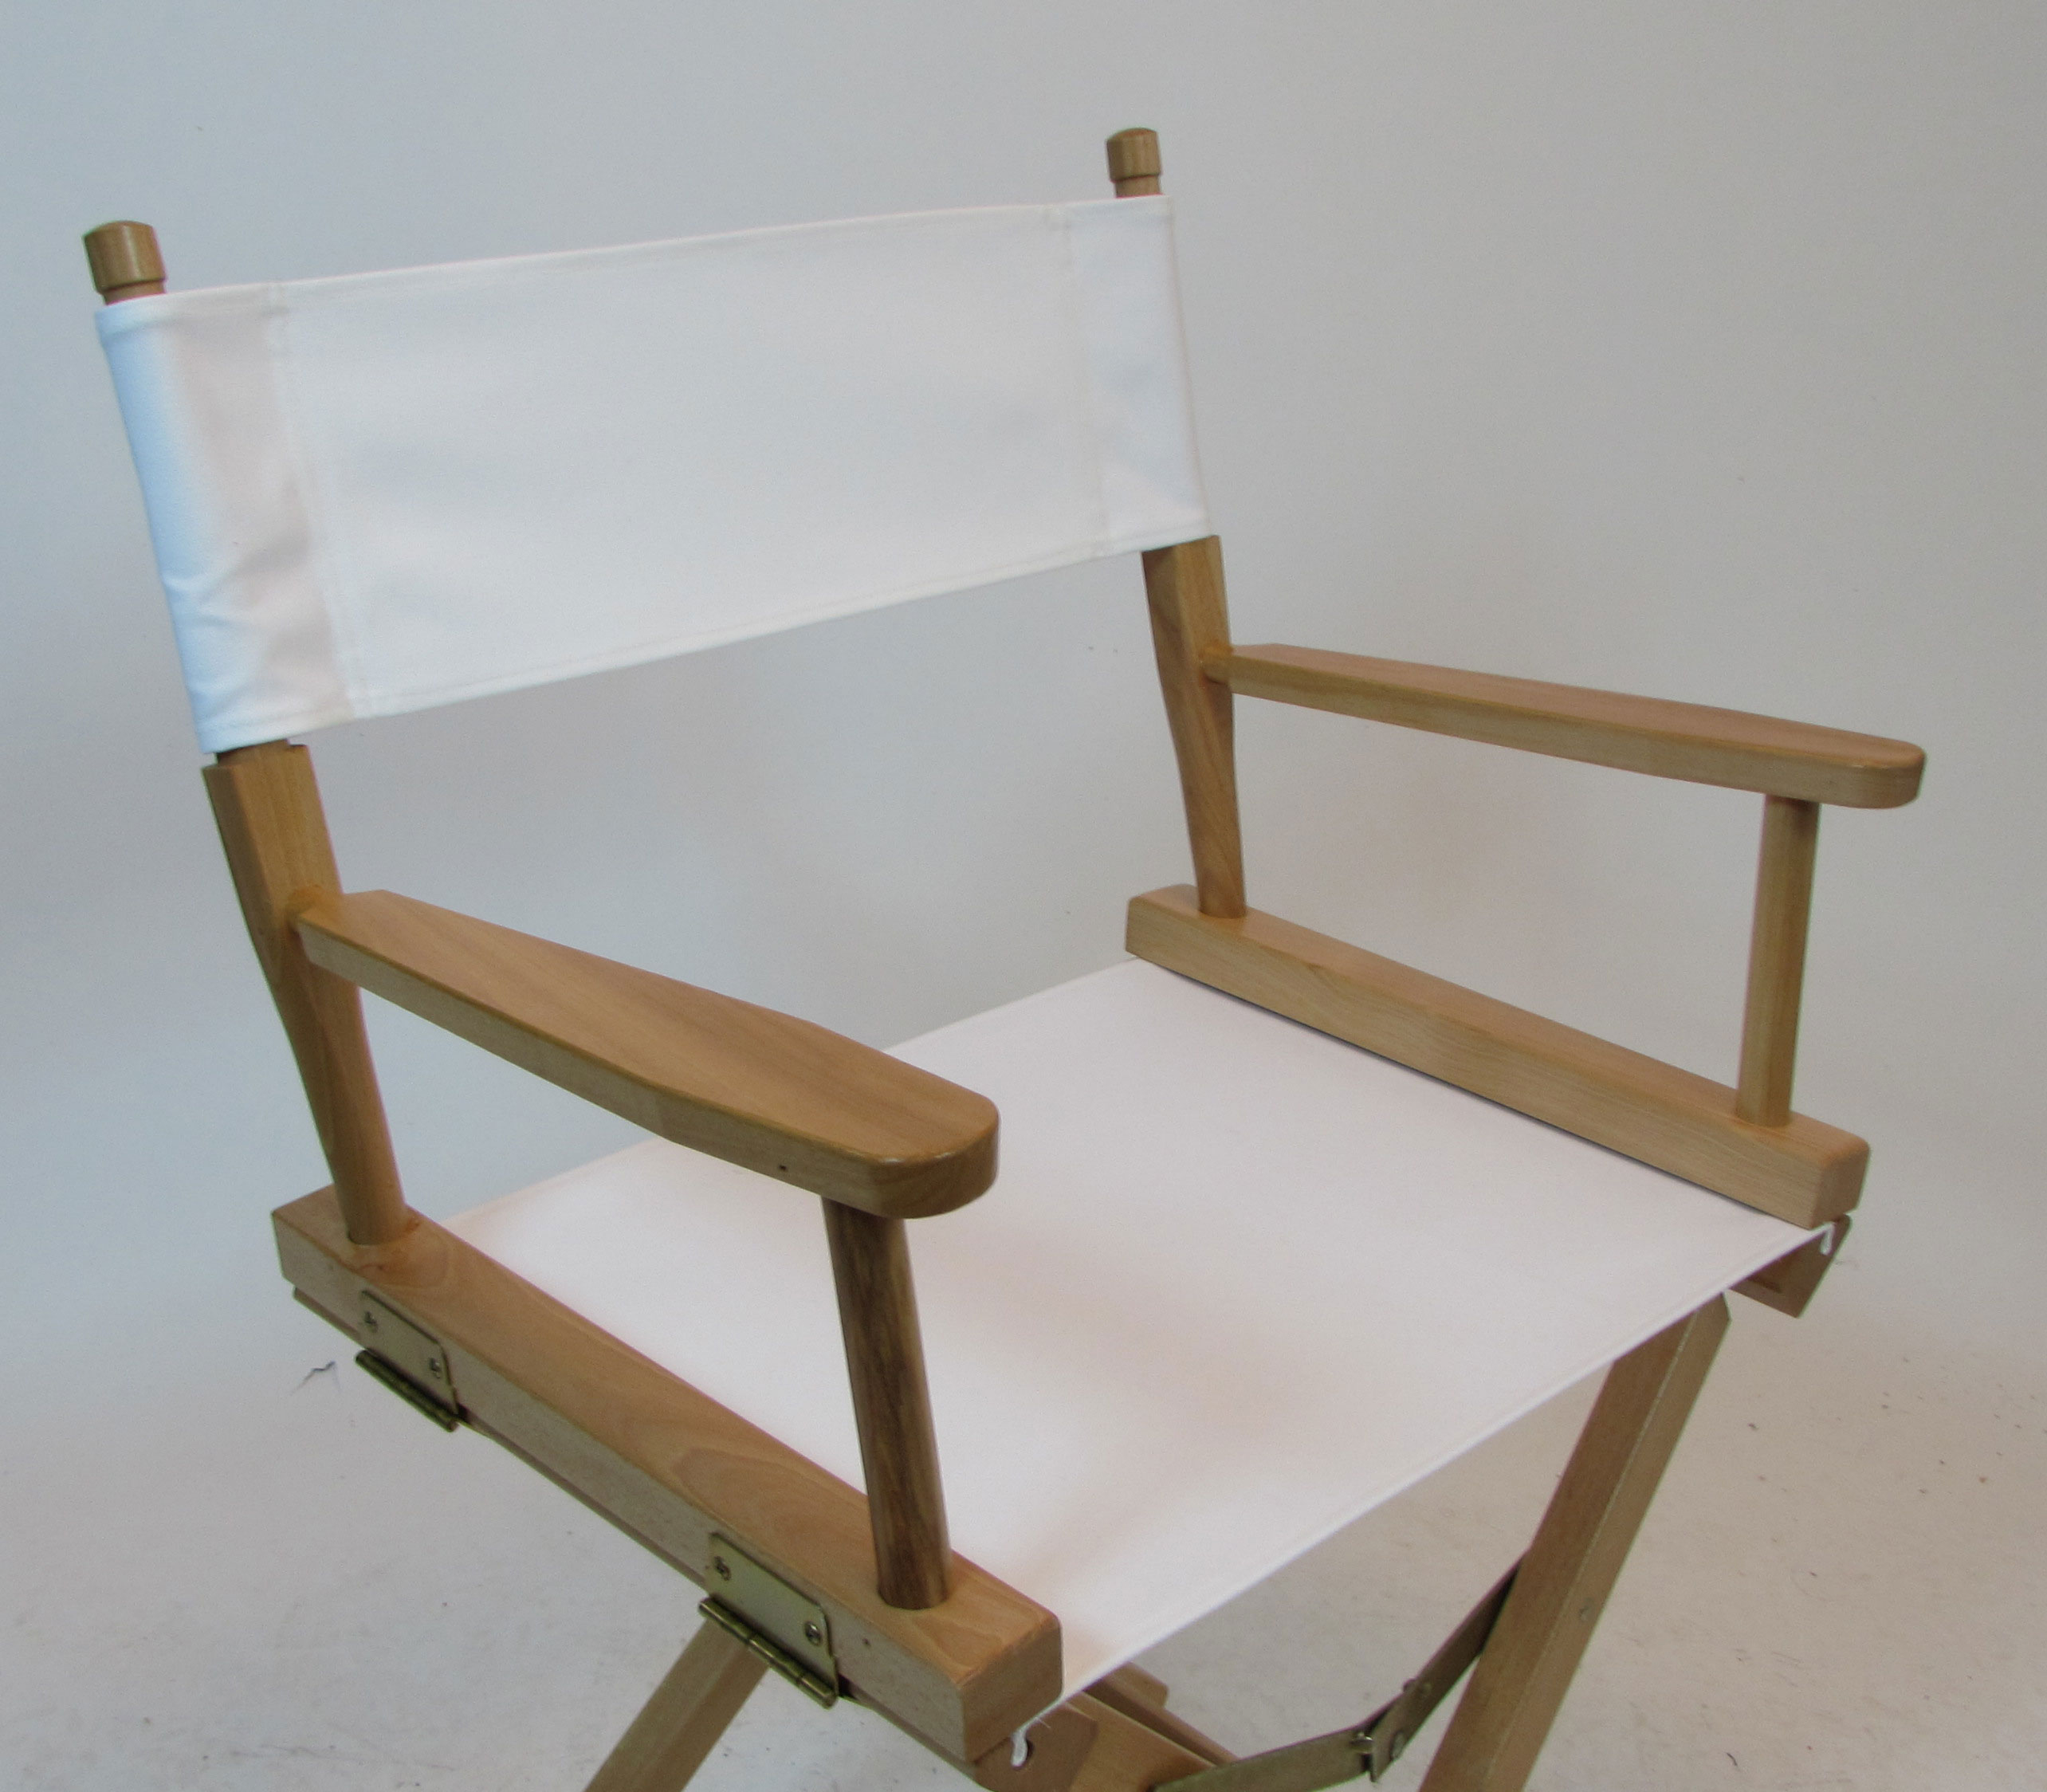 Gold Medal Replacement Cover Canvas for Directors Chair ROUND STICK